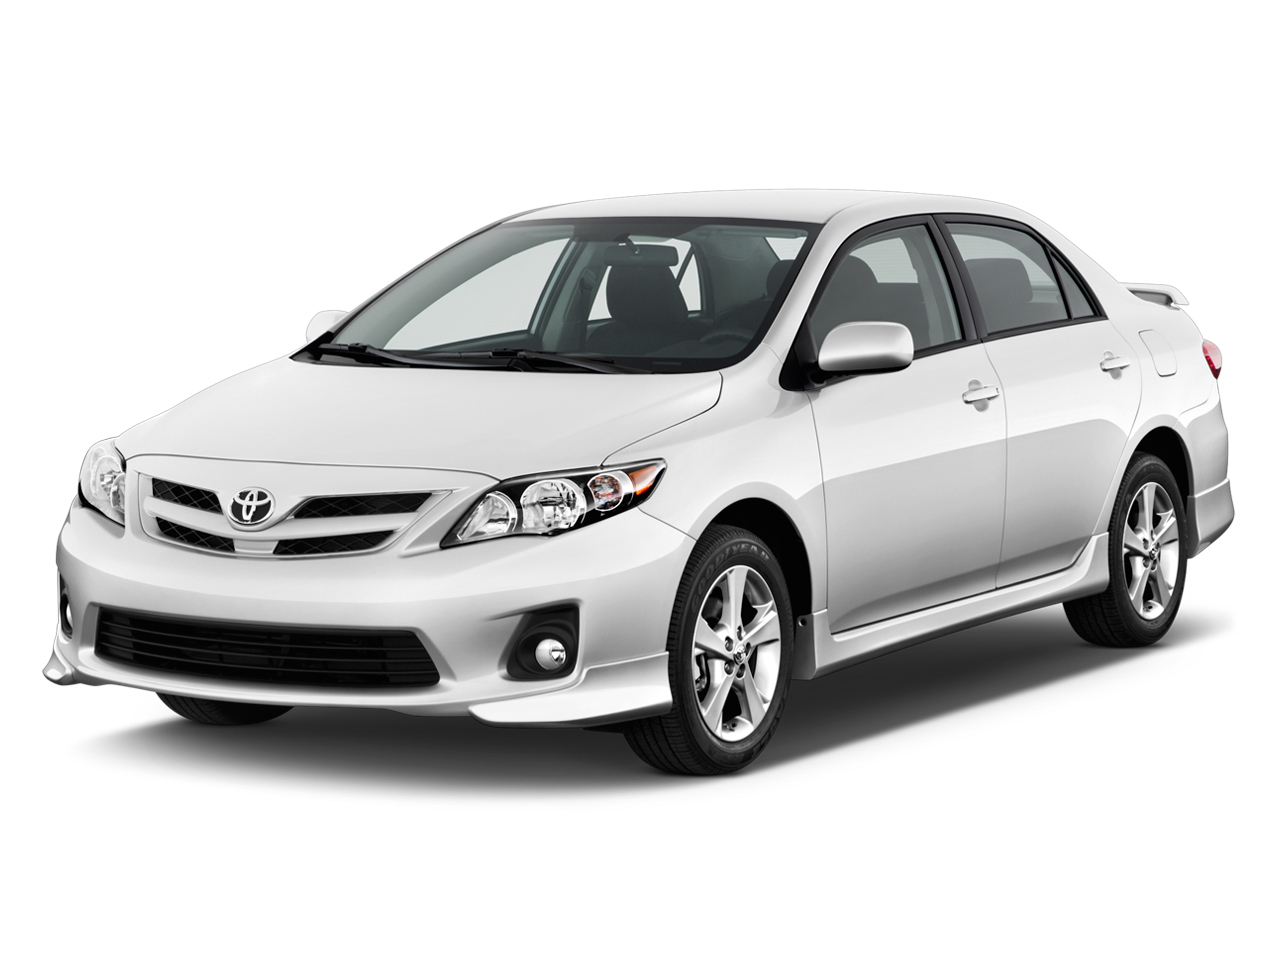 2012 Toyota Corolla Review, Ratings, Specs, Prices, and Photos - The Car Connection